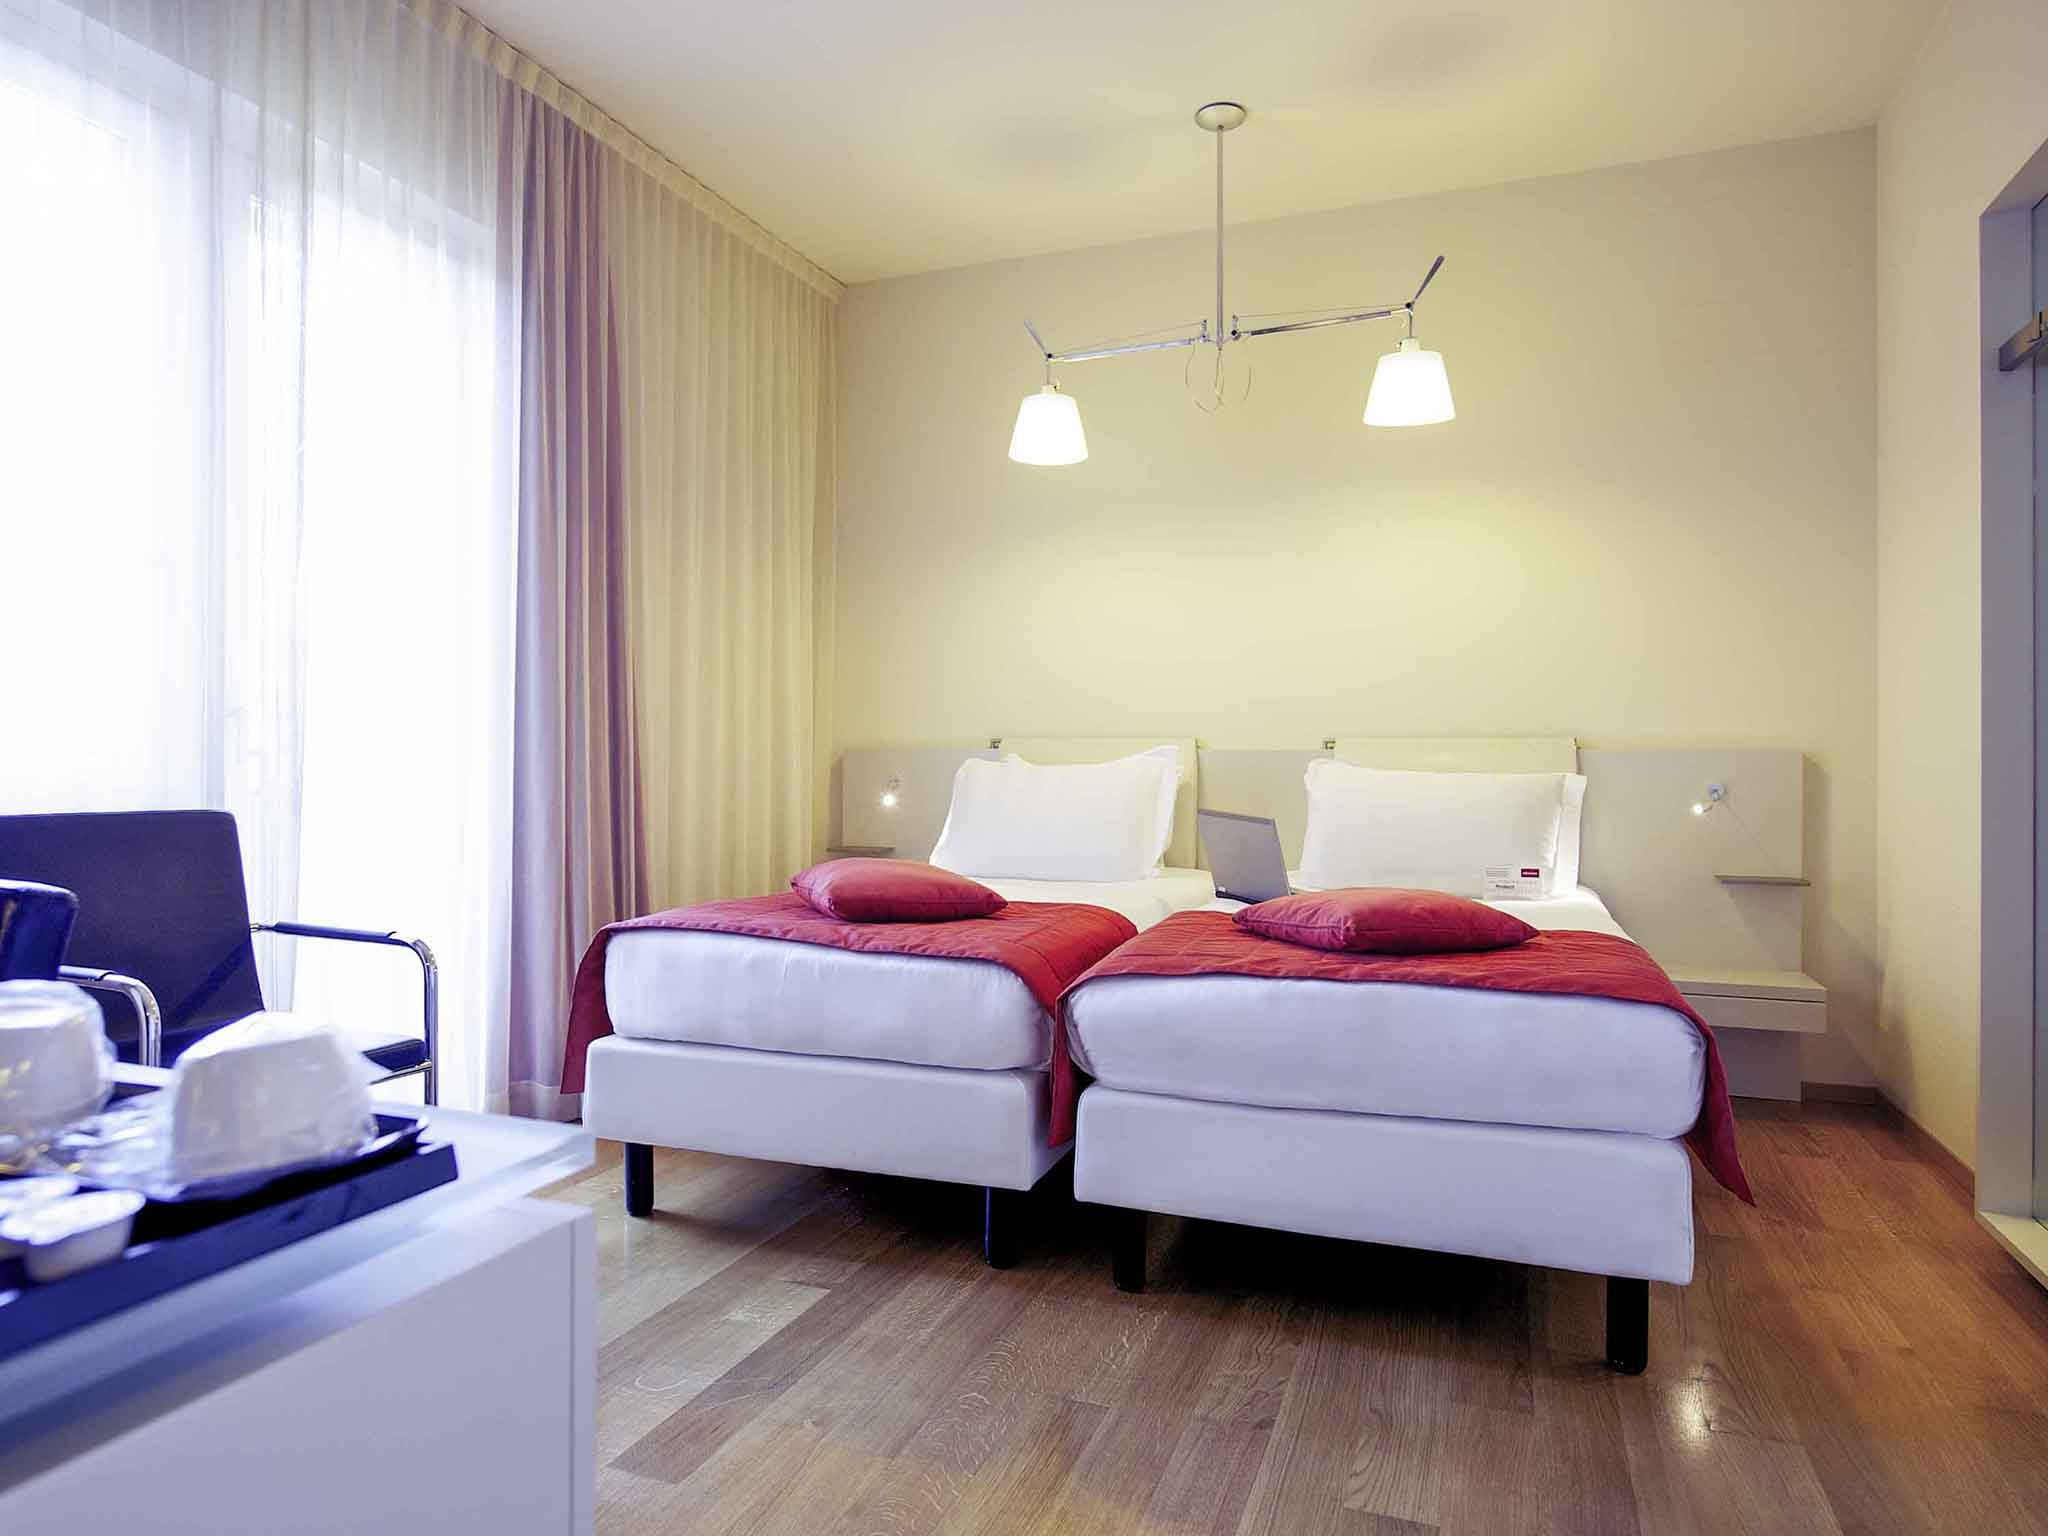 Bed and breakfast navigli milano bed and breakfast for Bed and breakfast milano